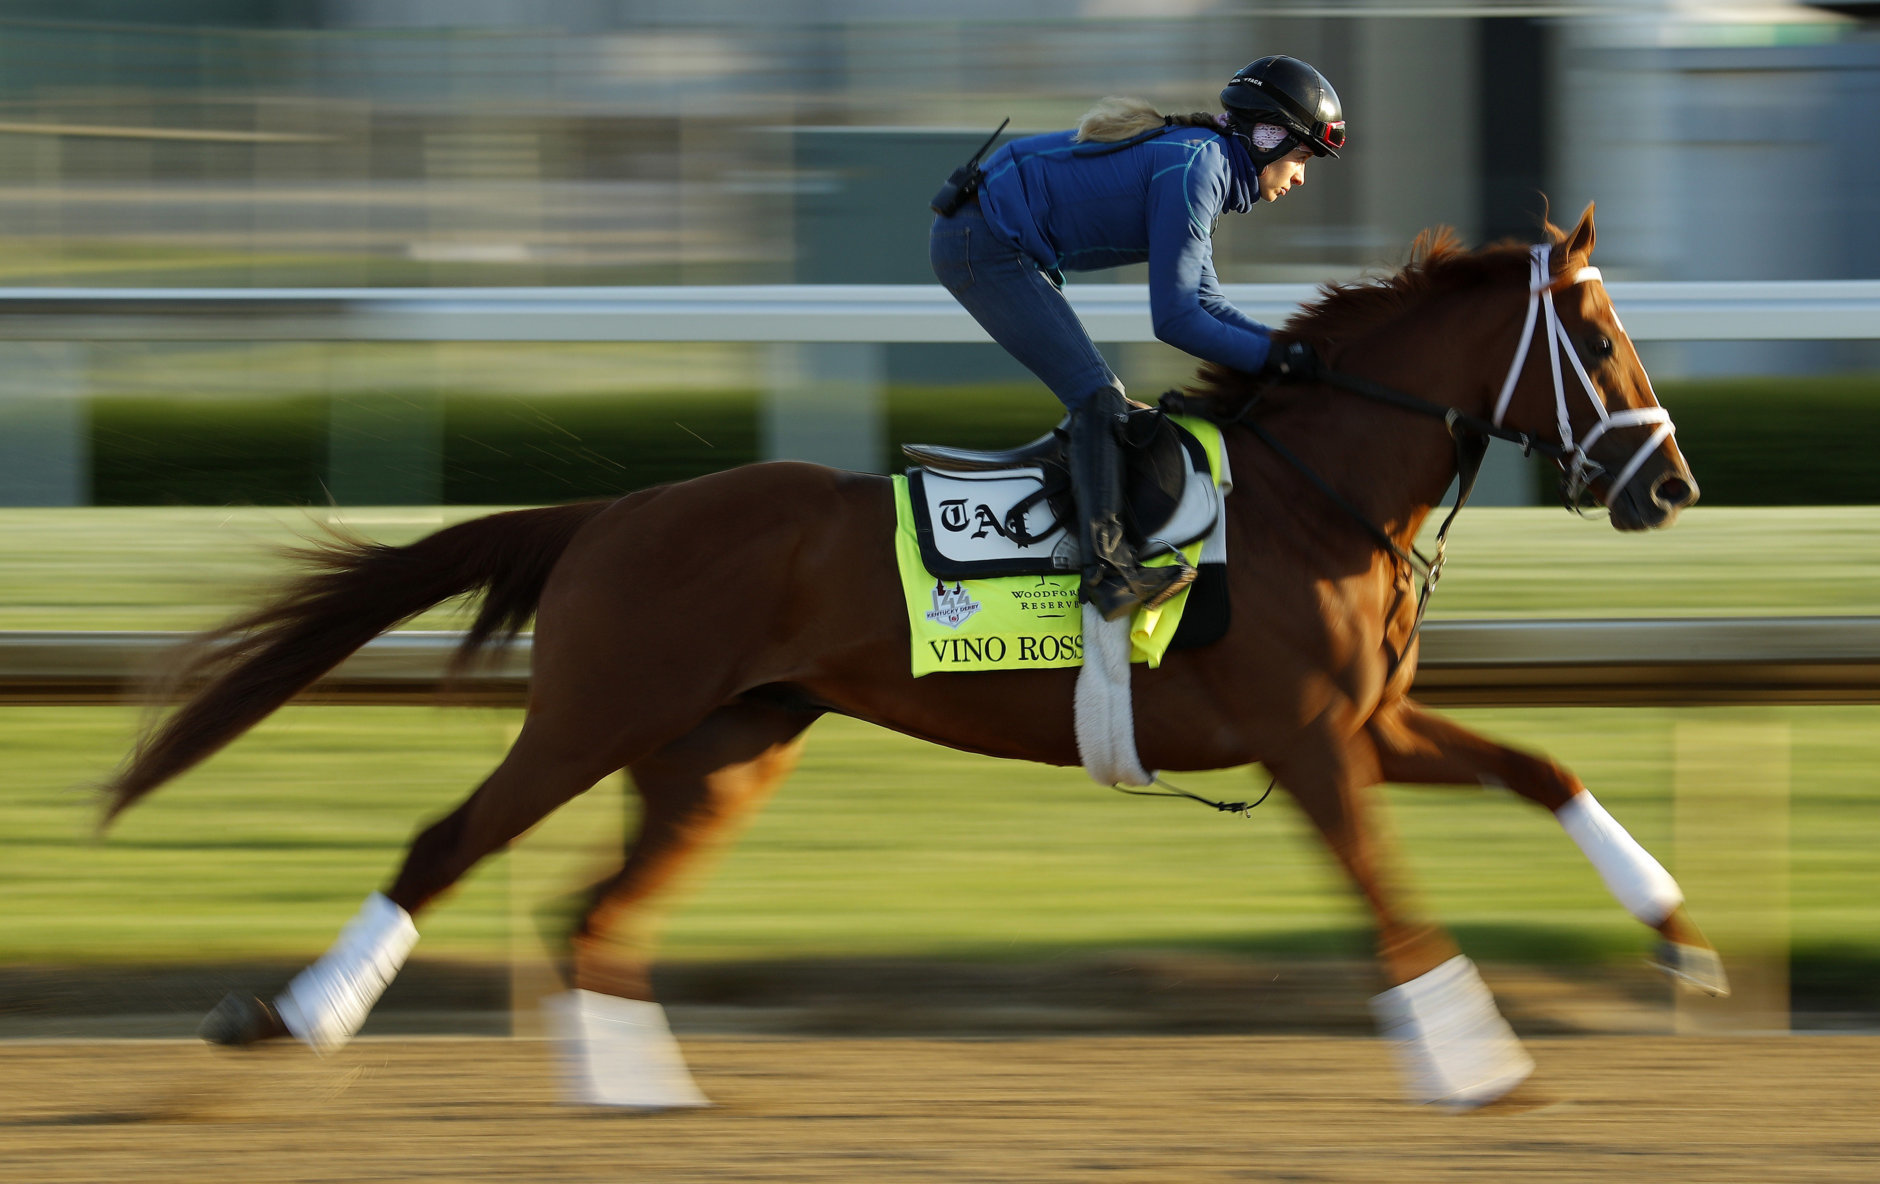 Kentucky Derby hopeful Vino Rosso trains at Churchill Downs Monday, April 30, 2018, in Louisville, Ky. The 144th running of the Kentucky Derby is scheduled for Saturday, May 5. (AP Photo/Charlie Riedel)